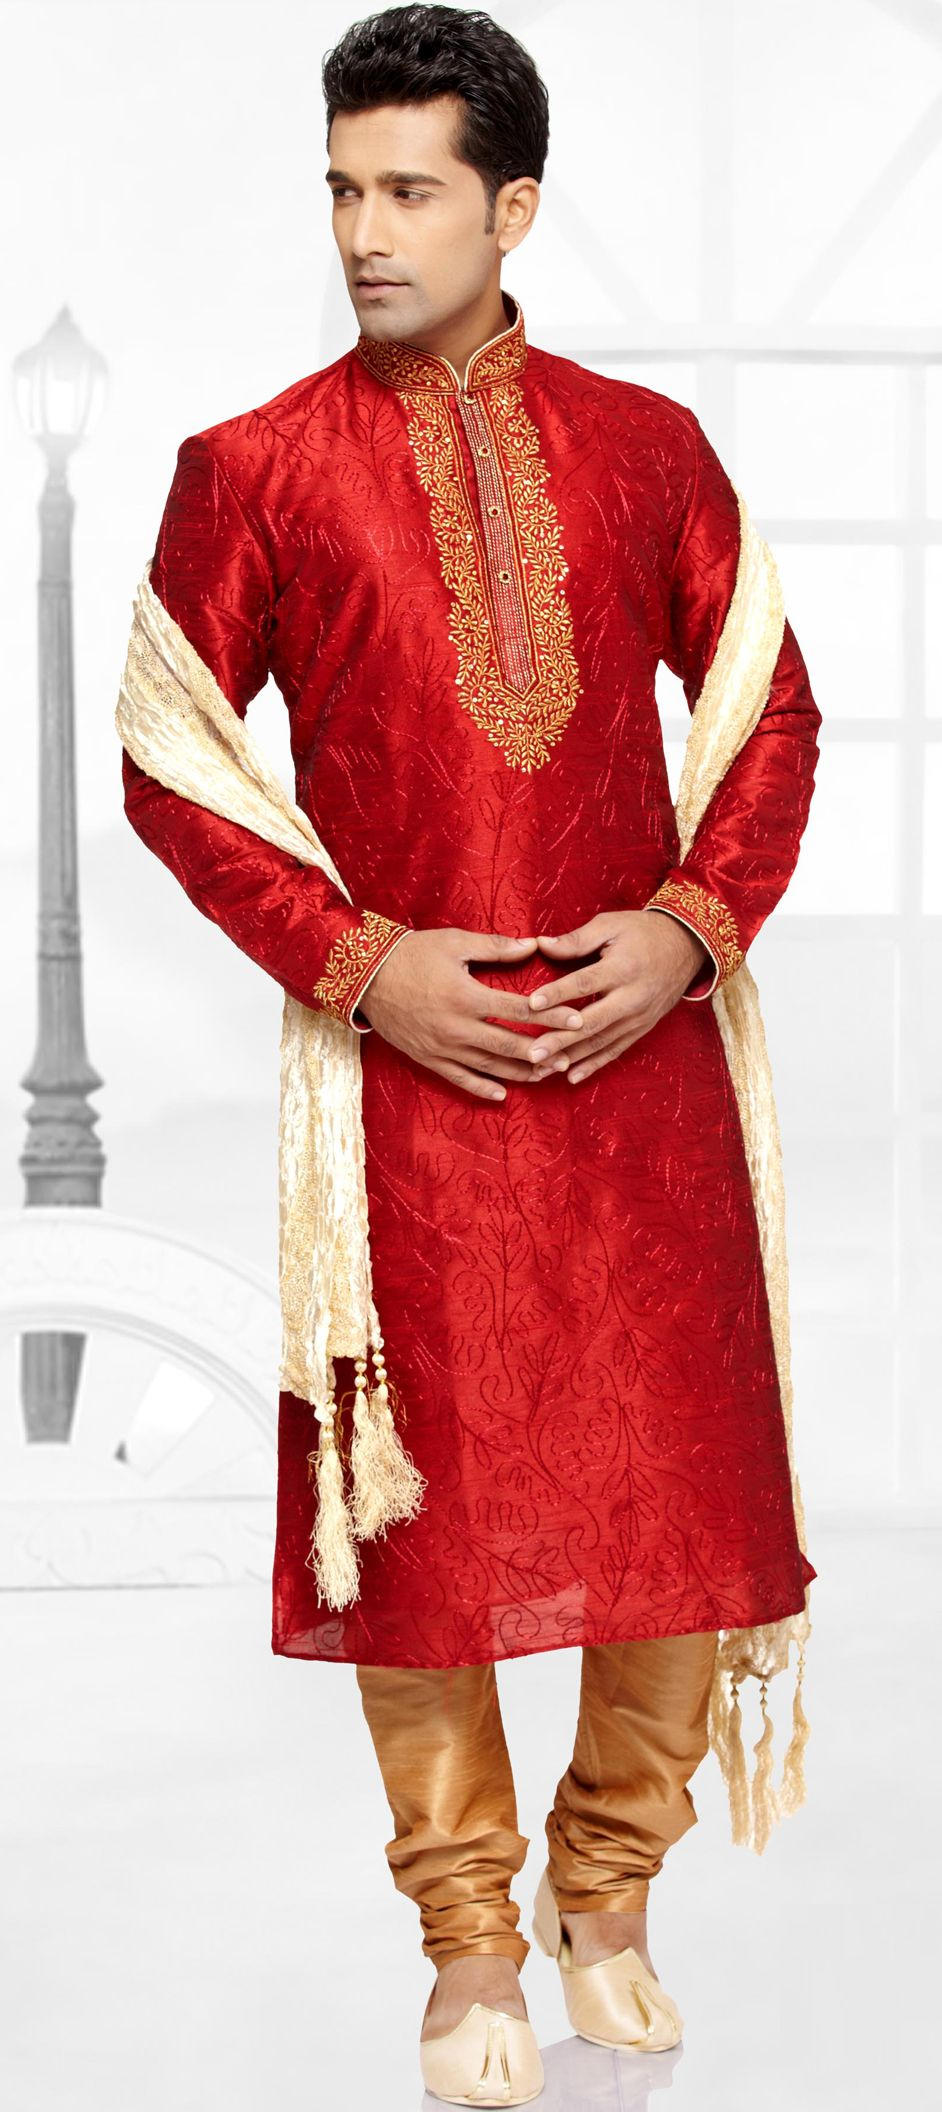 503063: Red and Maroon color family stitched Kurta Pyjamas . | mens ...